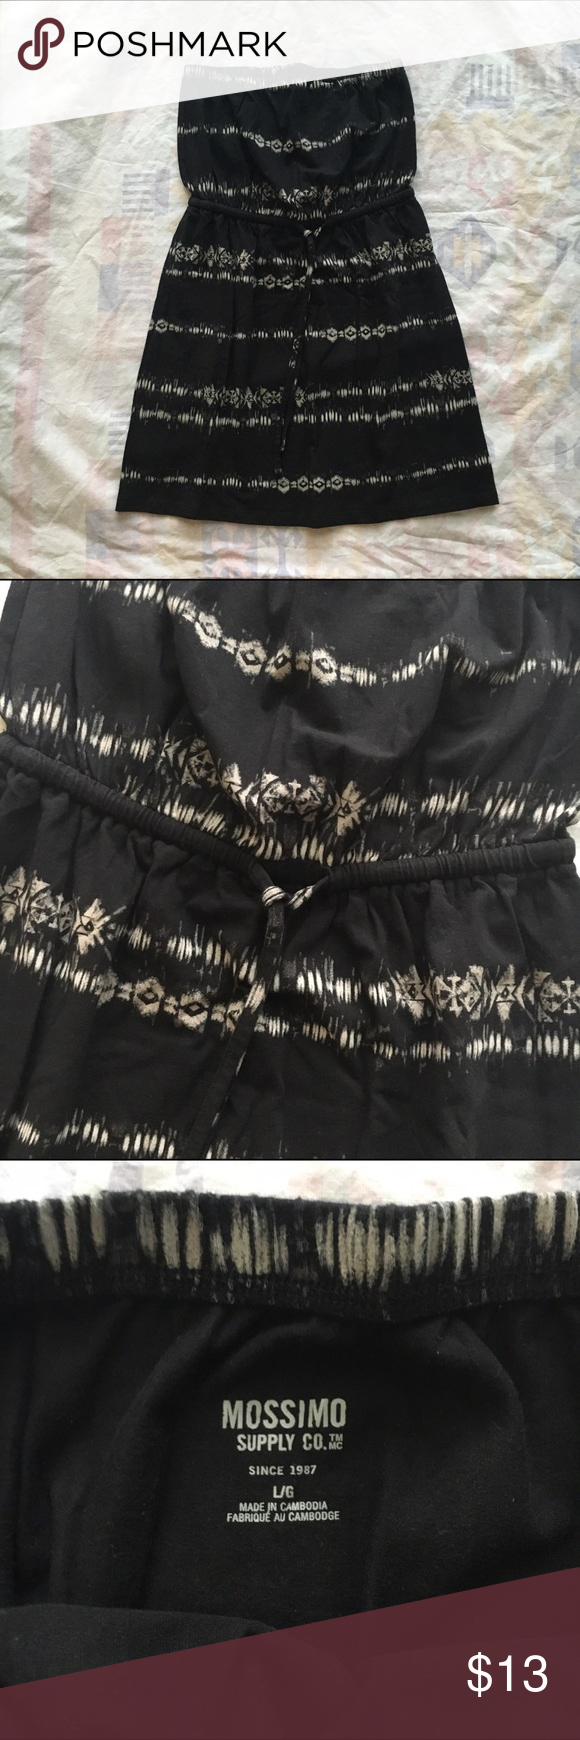 Tribal Print Tube Dress Never worn! Cute lil dress for summer. Great for a cover up or a casual night out. Priced to sell quick but open to offers!  Mossimo Supply Co. Dresses Mini